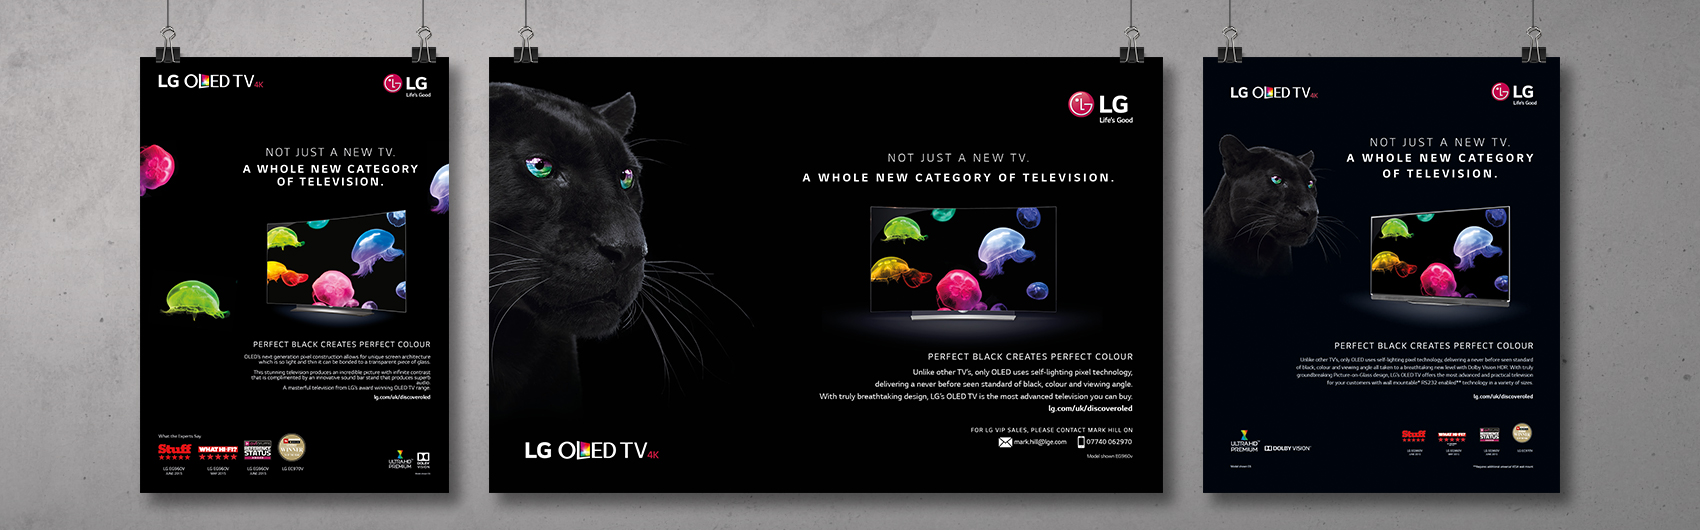 LG OLED Rollout